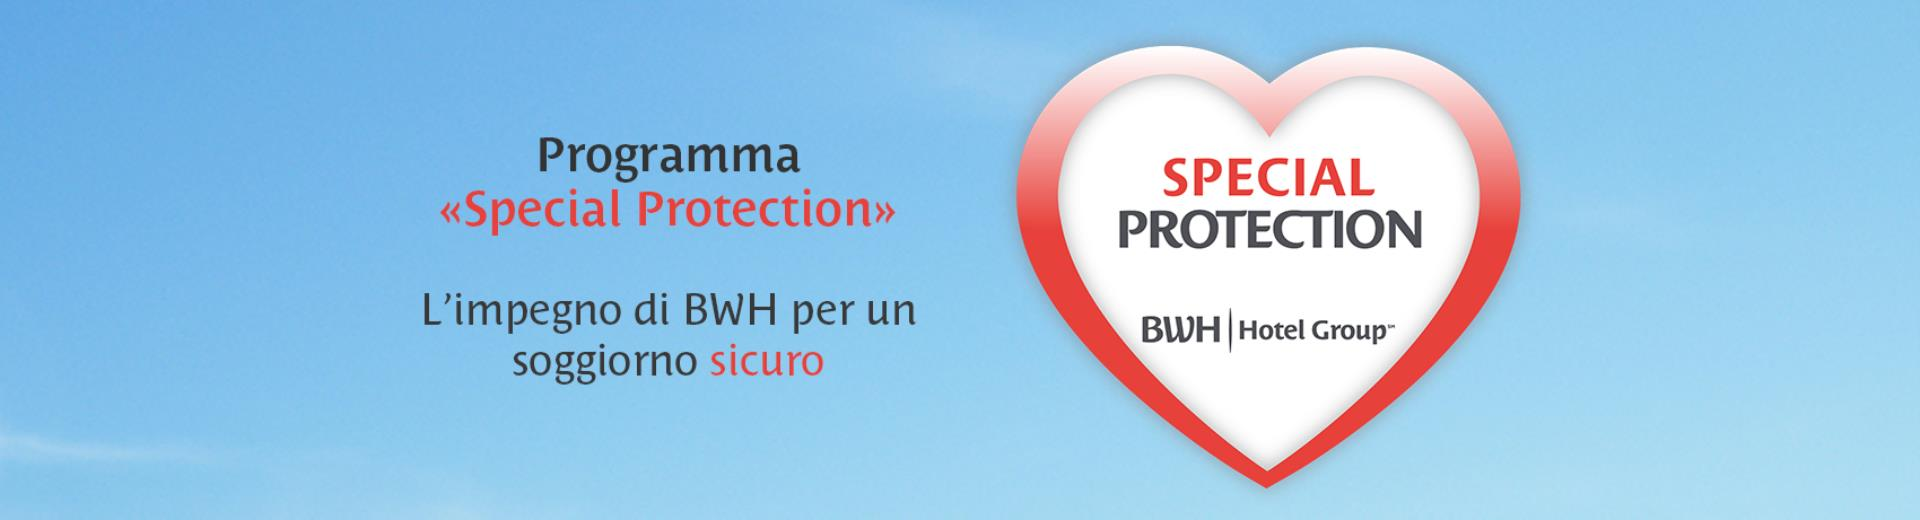 Programma Special Protection